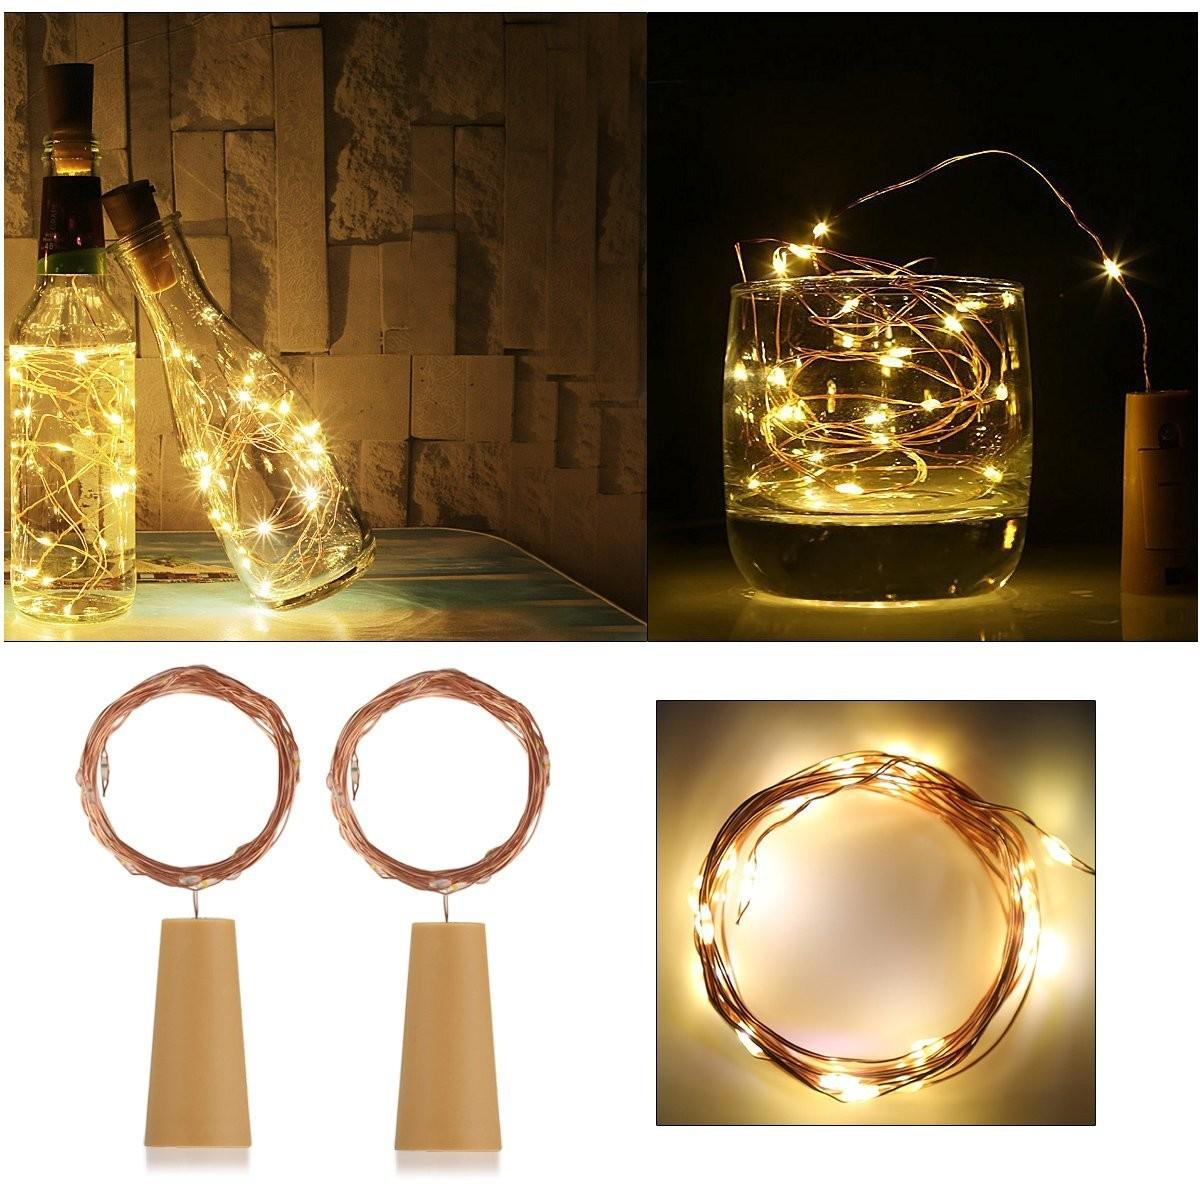 Ansaw Recycle Wine Bottle Lights Pro Pack 20leds